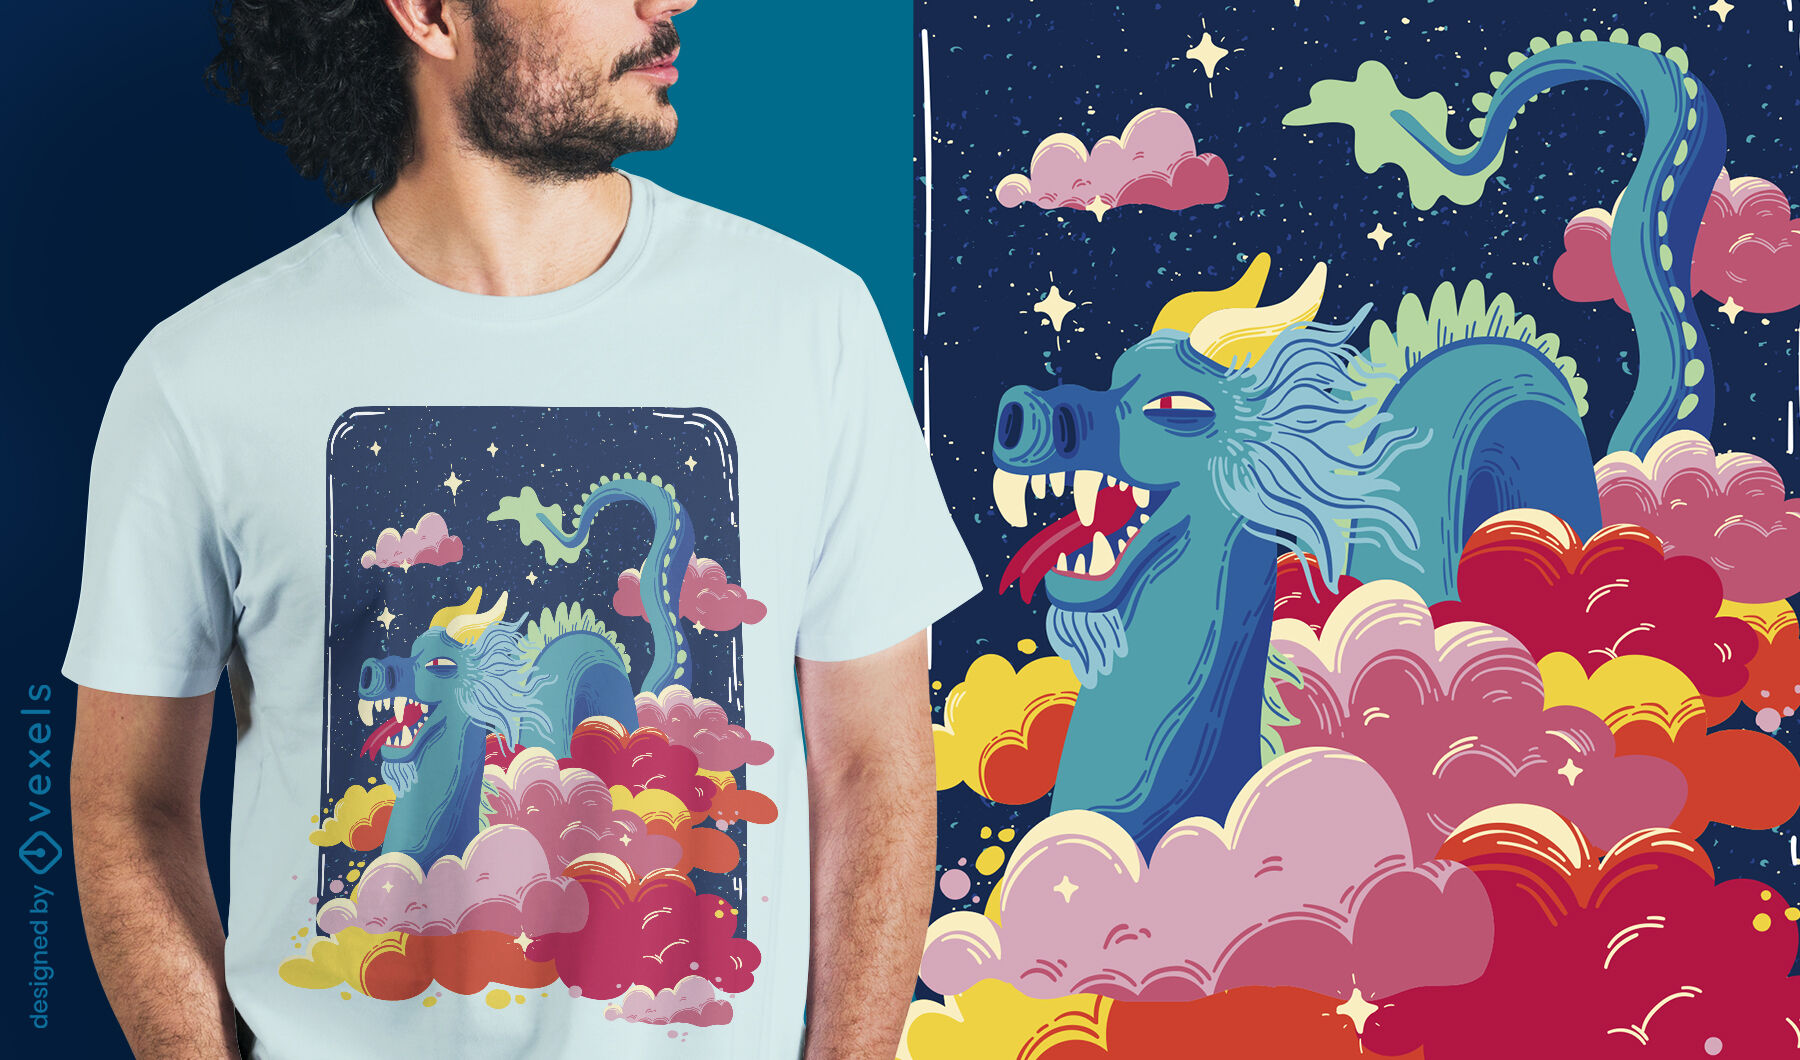 Fairytale dragon in the clouds t-shirt design